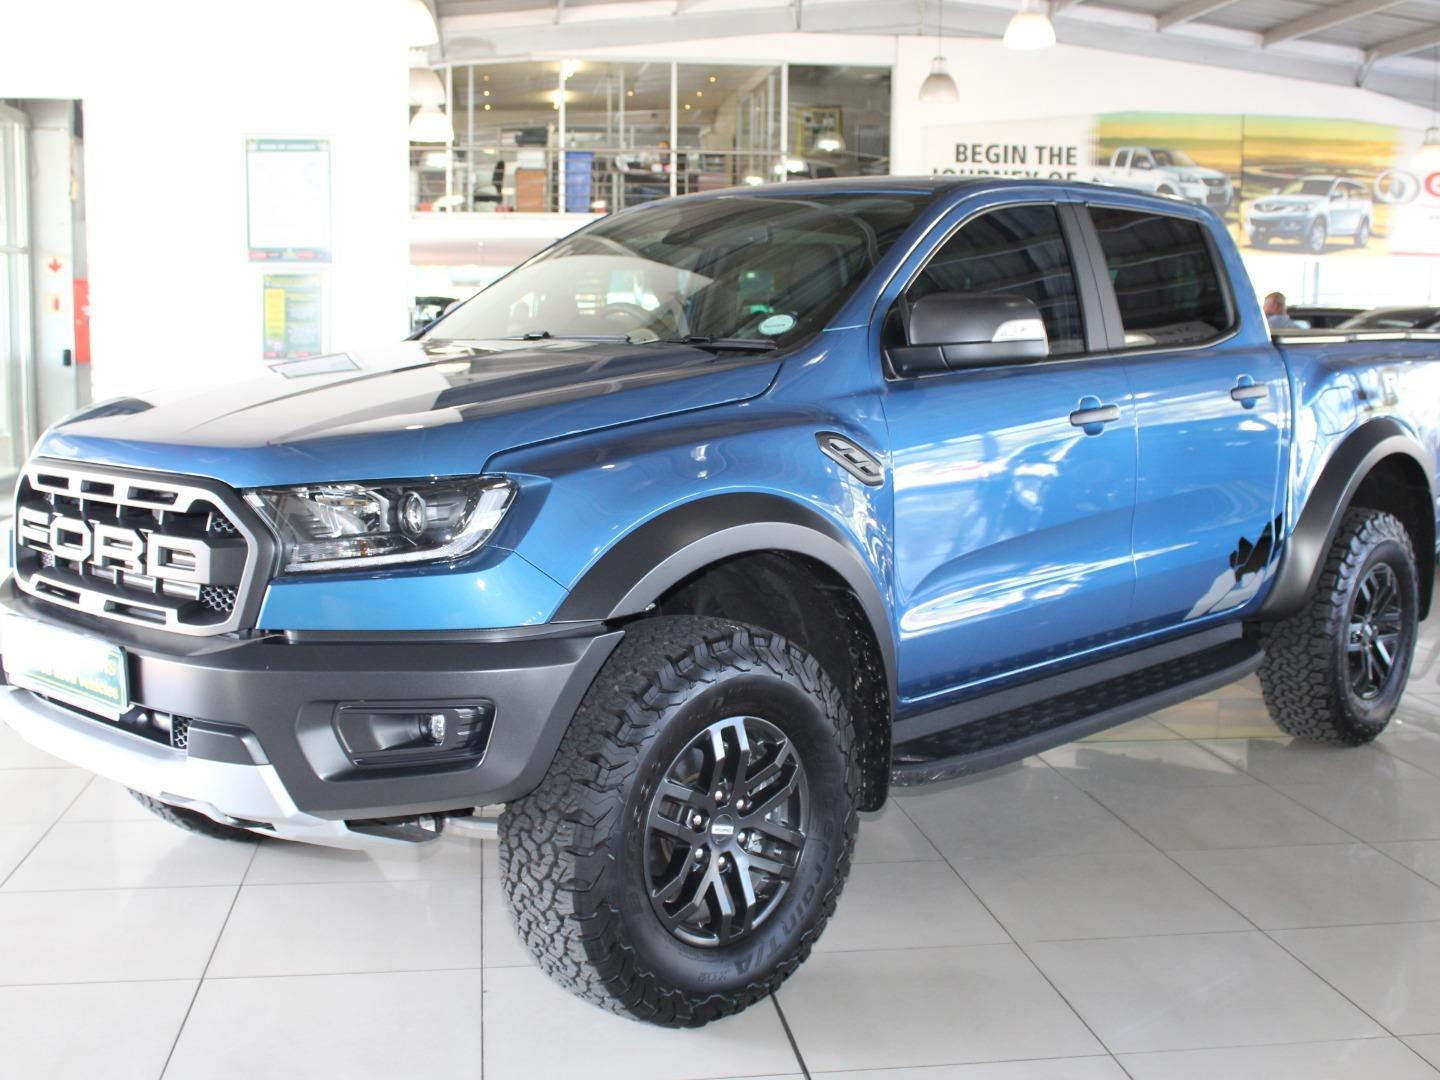 2019 Ford Ranger 2.0Bi-Turbo Double Cab 4x4 Raptor- Picture 2